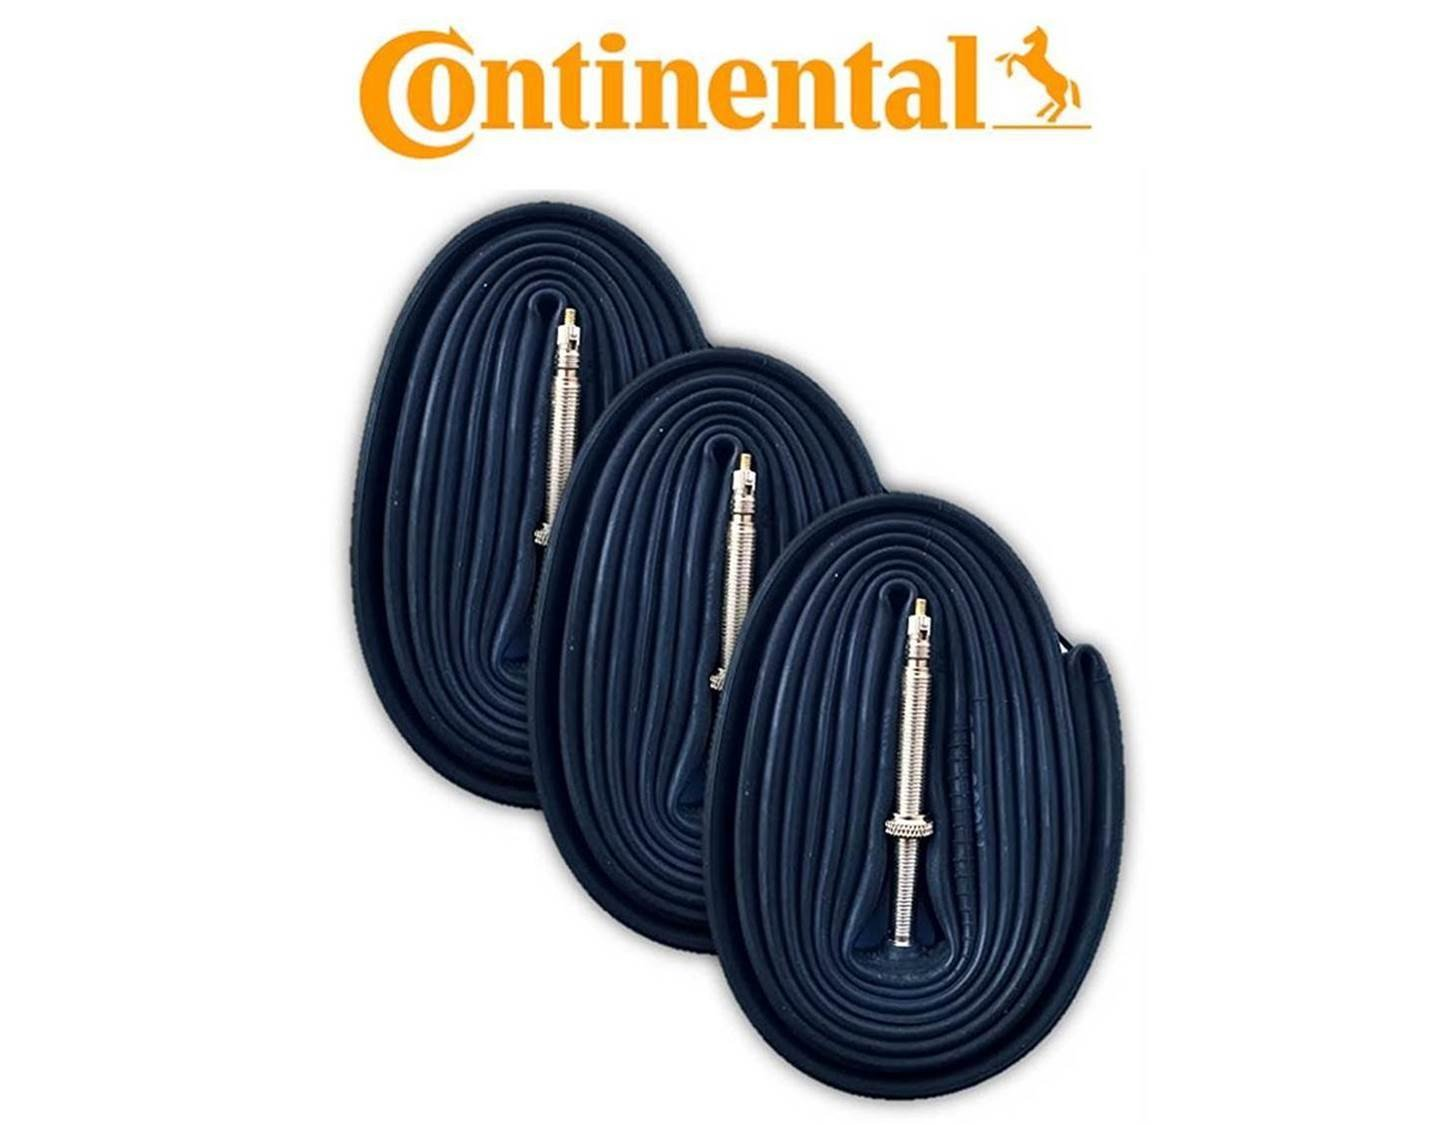 Continental Race 28 700 x 20-25c Tubes (Pack of 3) - Presta 60mm by Continental (Image #1)